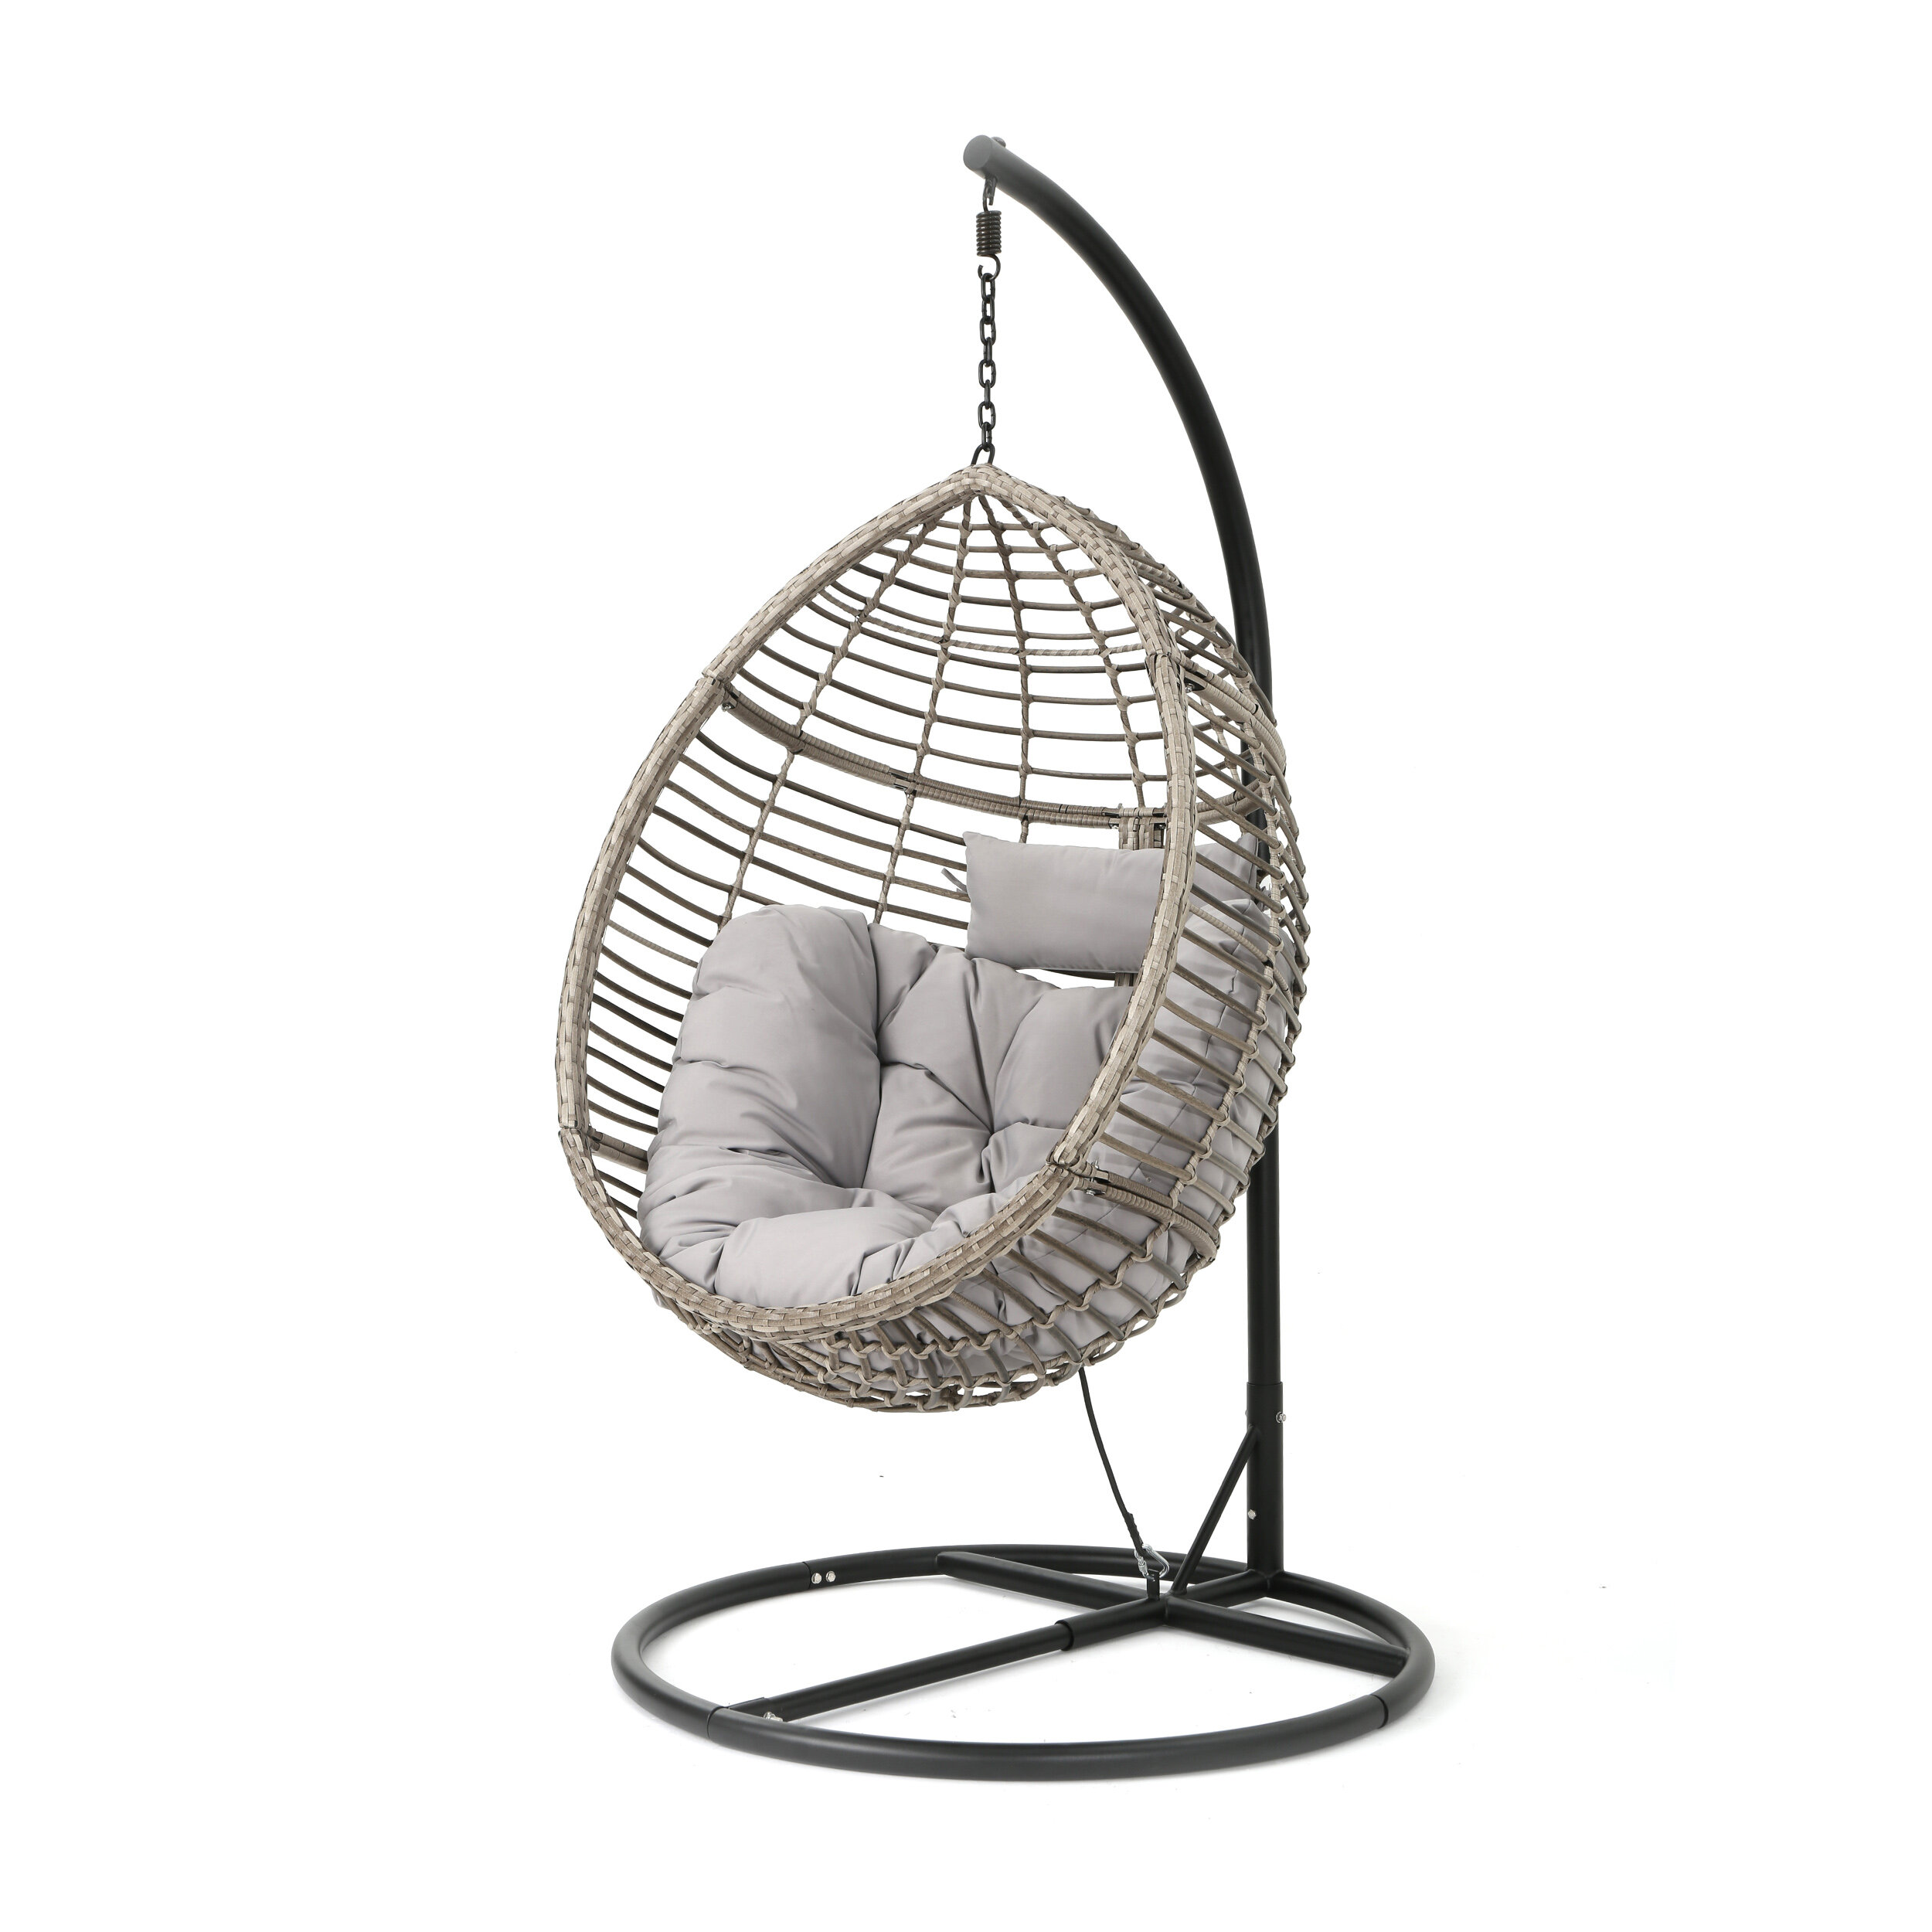 Weller Outdoor Wicker Basket Swing Chair With Stand Reviews Joss Main